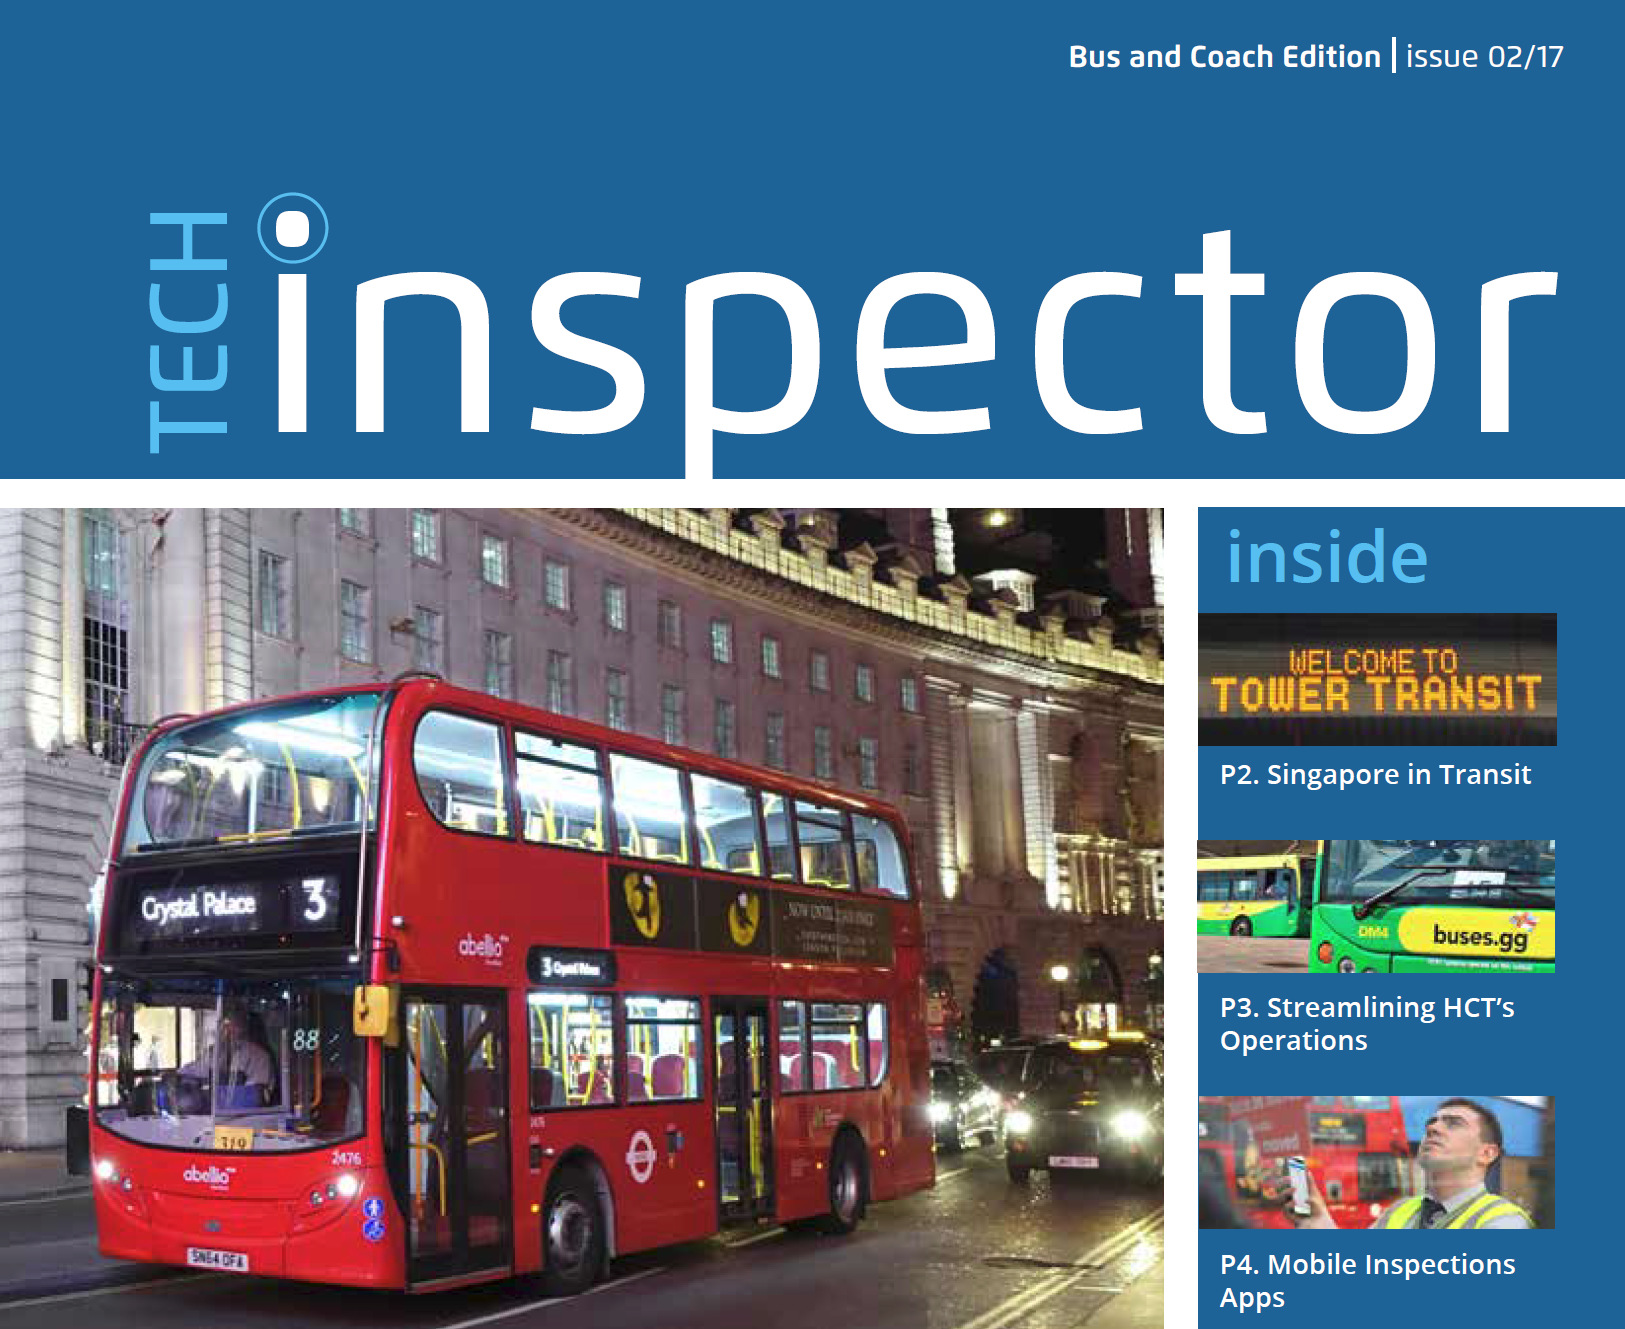 Bus and Coach Edition issue 02/17